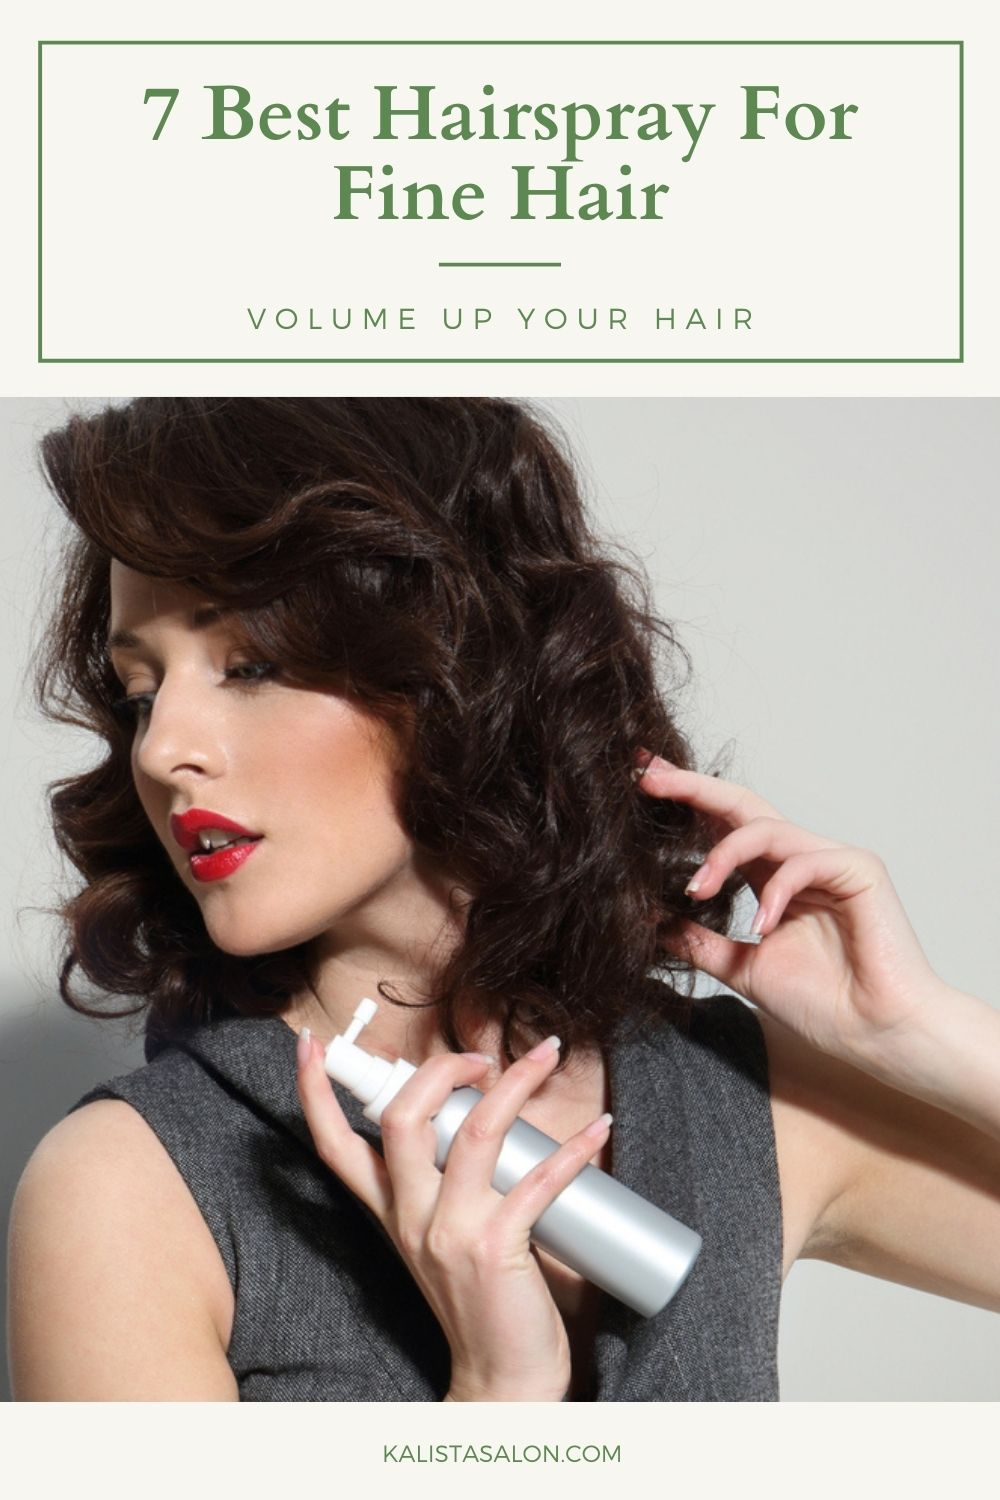 7 Best Hairsprays for Fine Hair Review